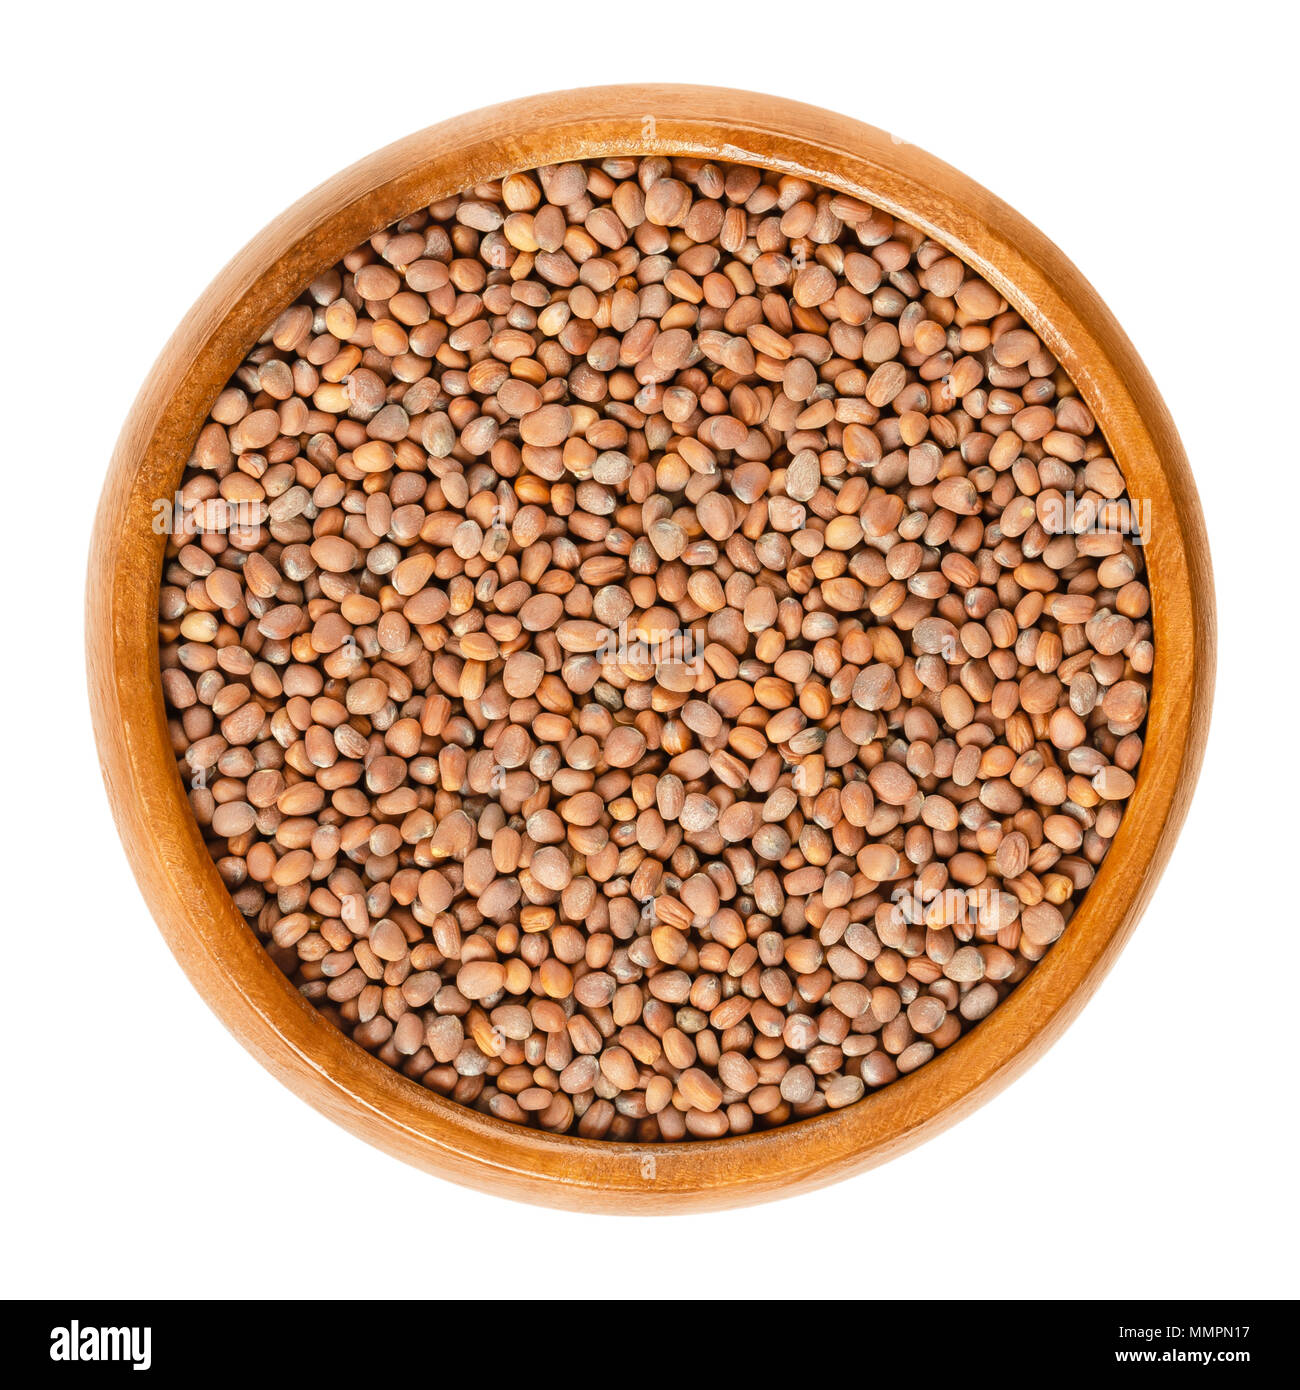 Daikon radish seeds in wooden bowl. Winter, Japanese or oriental radish. Raphanus sativus. Seeds for sprouting and consumption. Isolated macro photo. Stock Photo